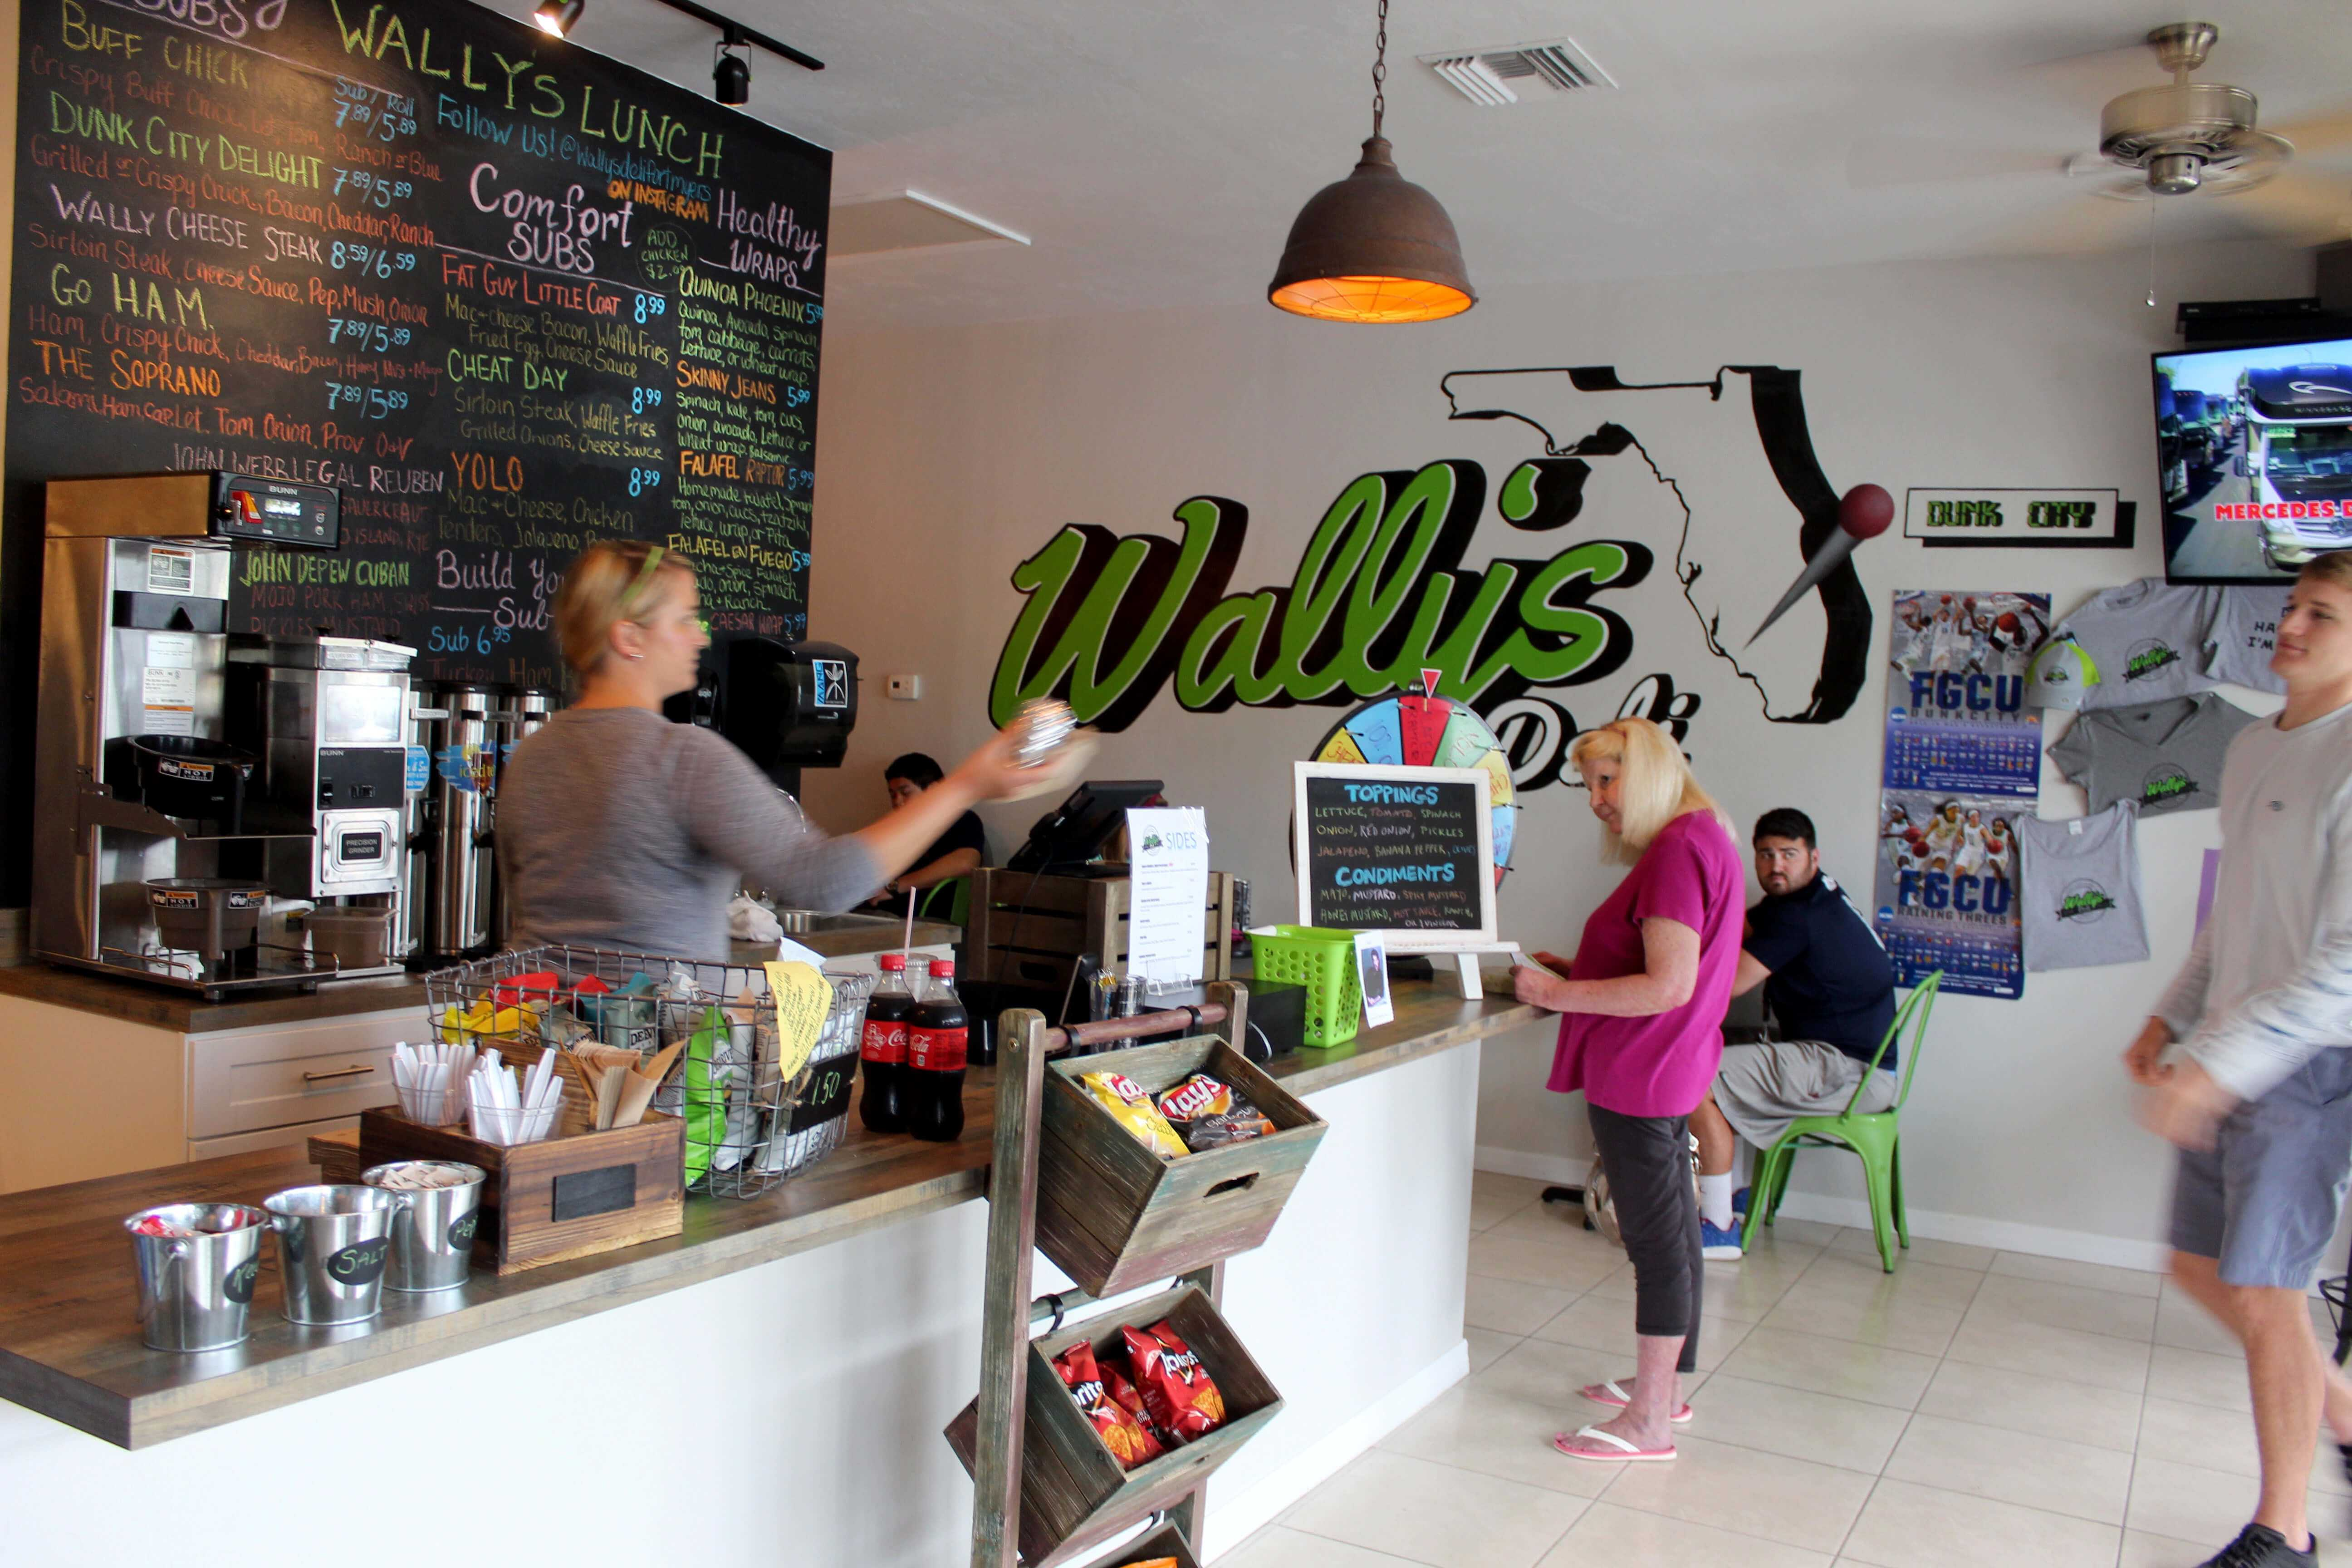 FGCU alumnus opens Wally's Deli in Fort Myers